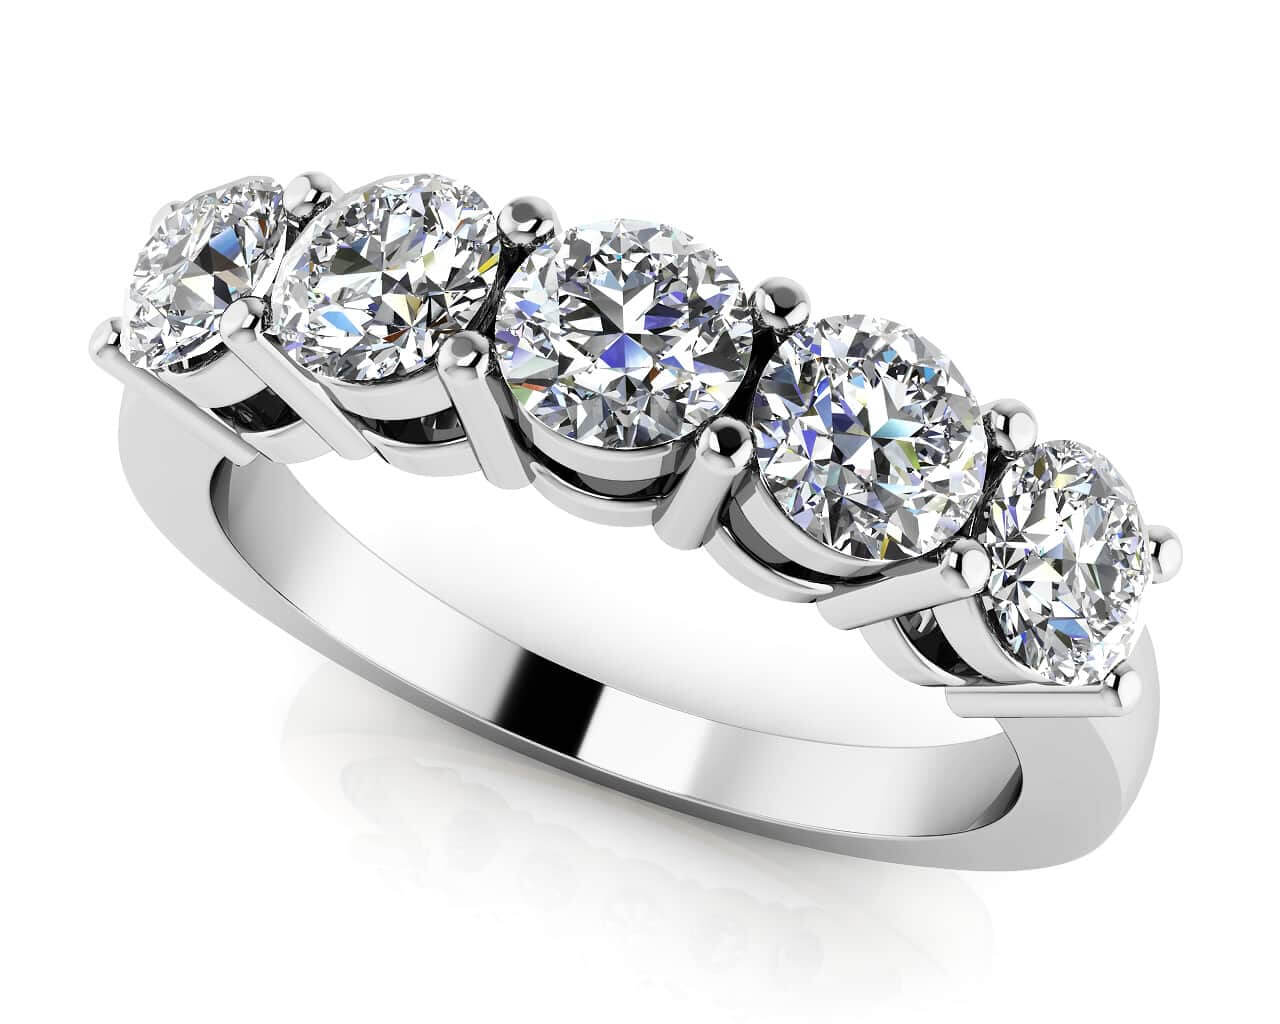 the band rate goes frieze ring of on which beautiful wedding first jewellery design own new build your galleries